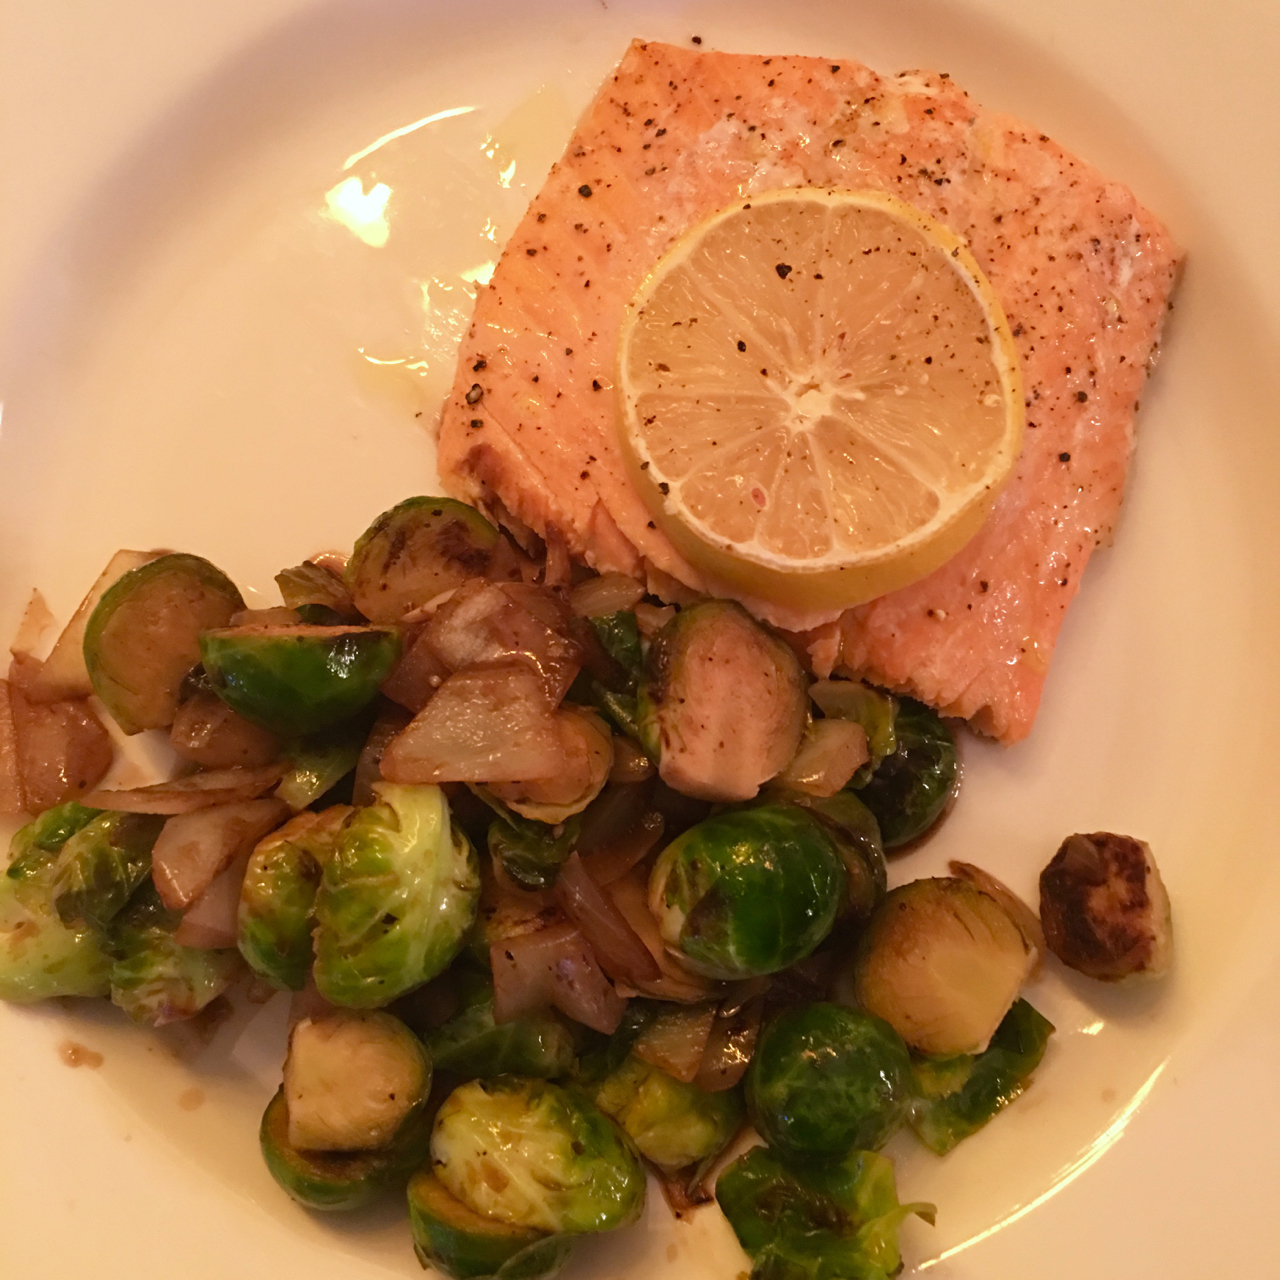 ROASTED SALMON WITH SAUTEED BRUSSELS SPROUTS AND ONIONS IN A BALSAMIC GLAZE